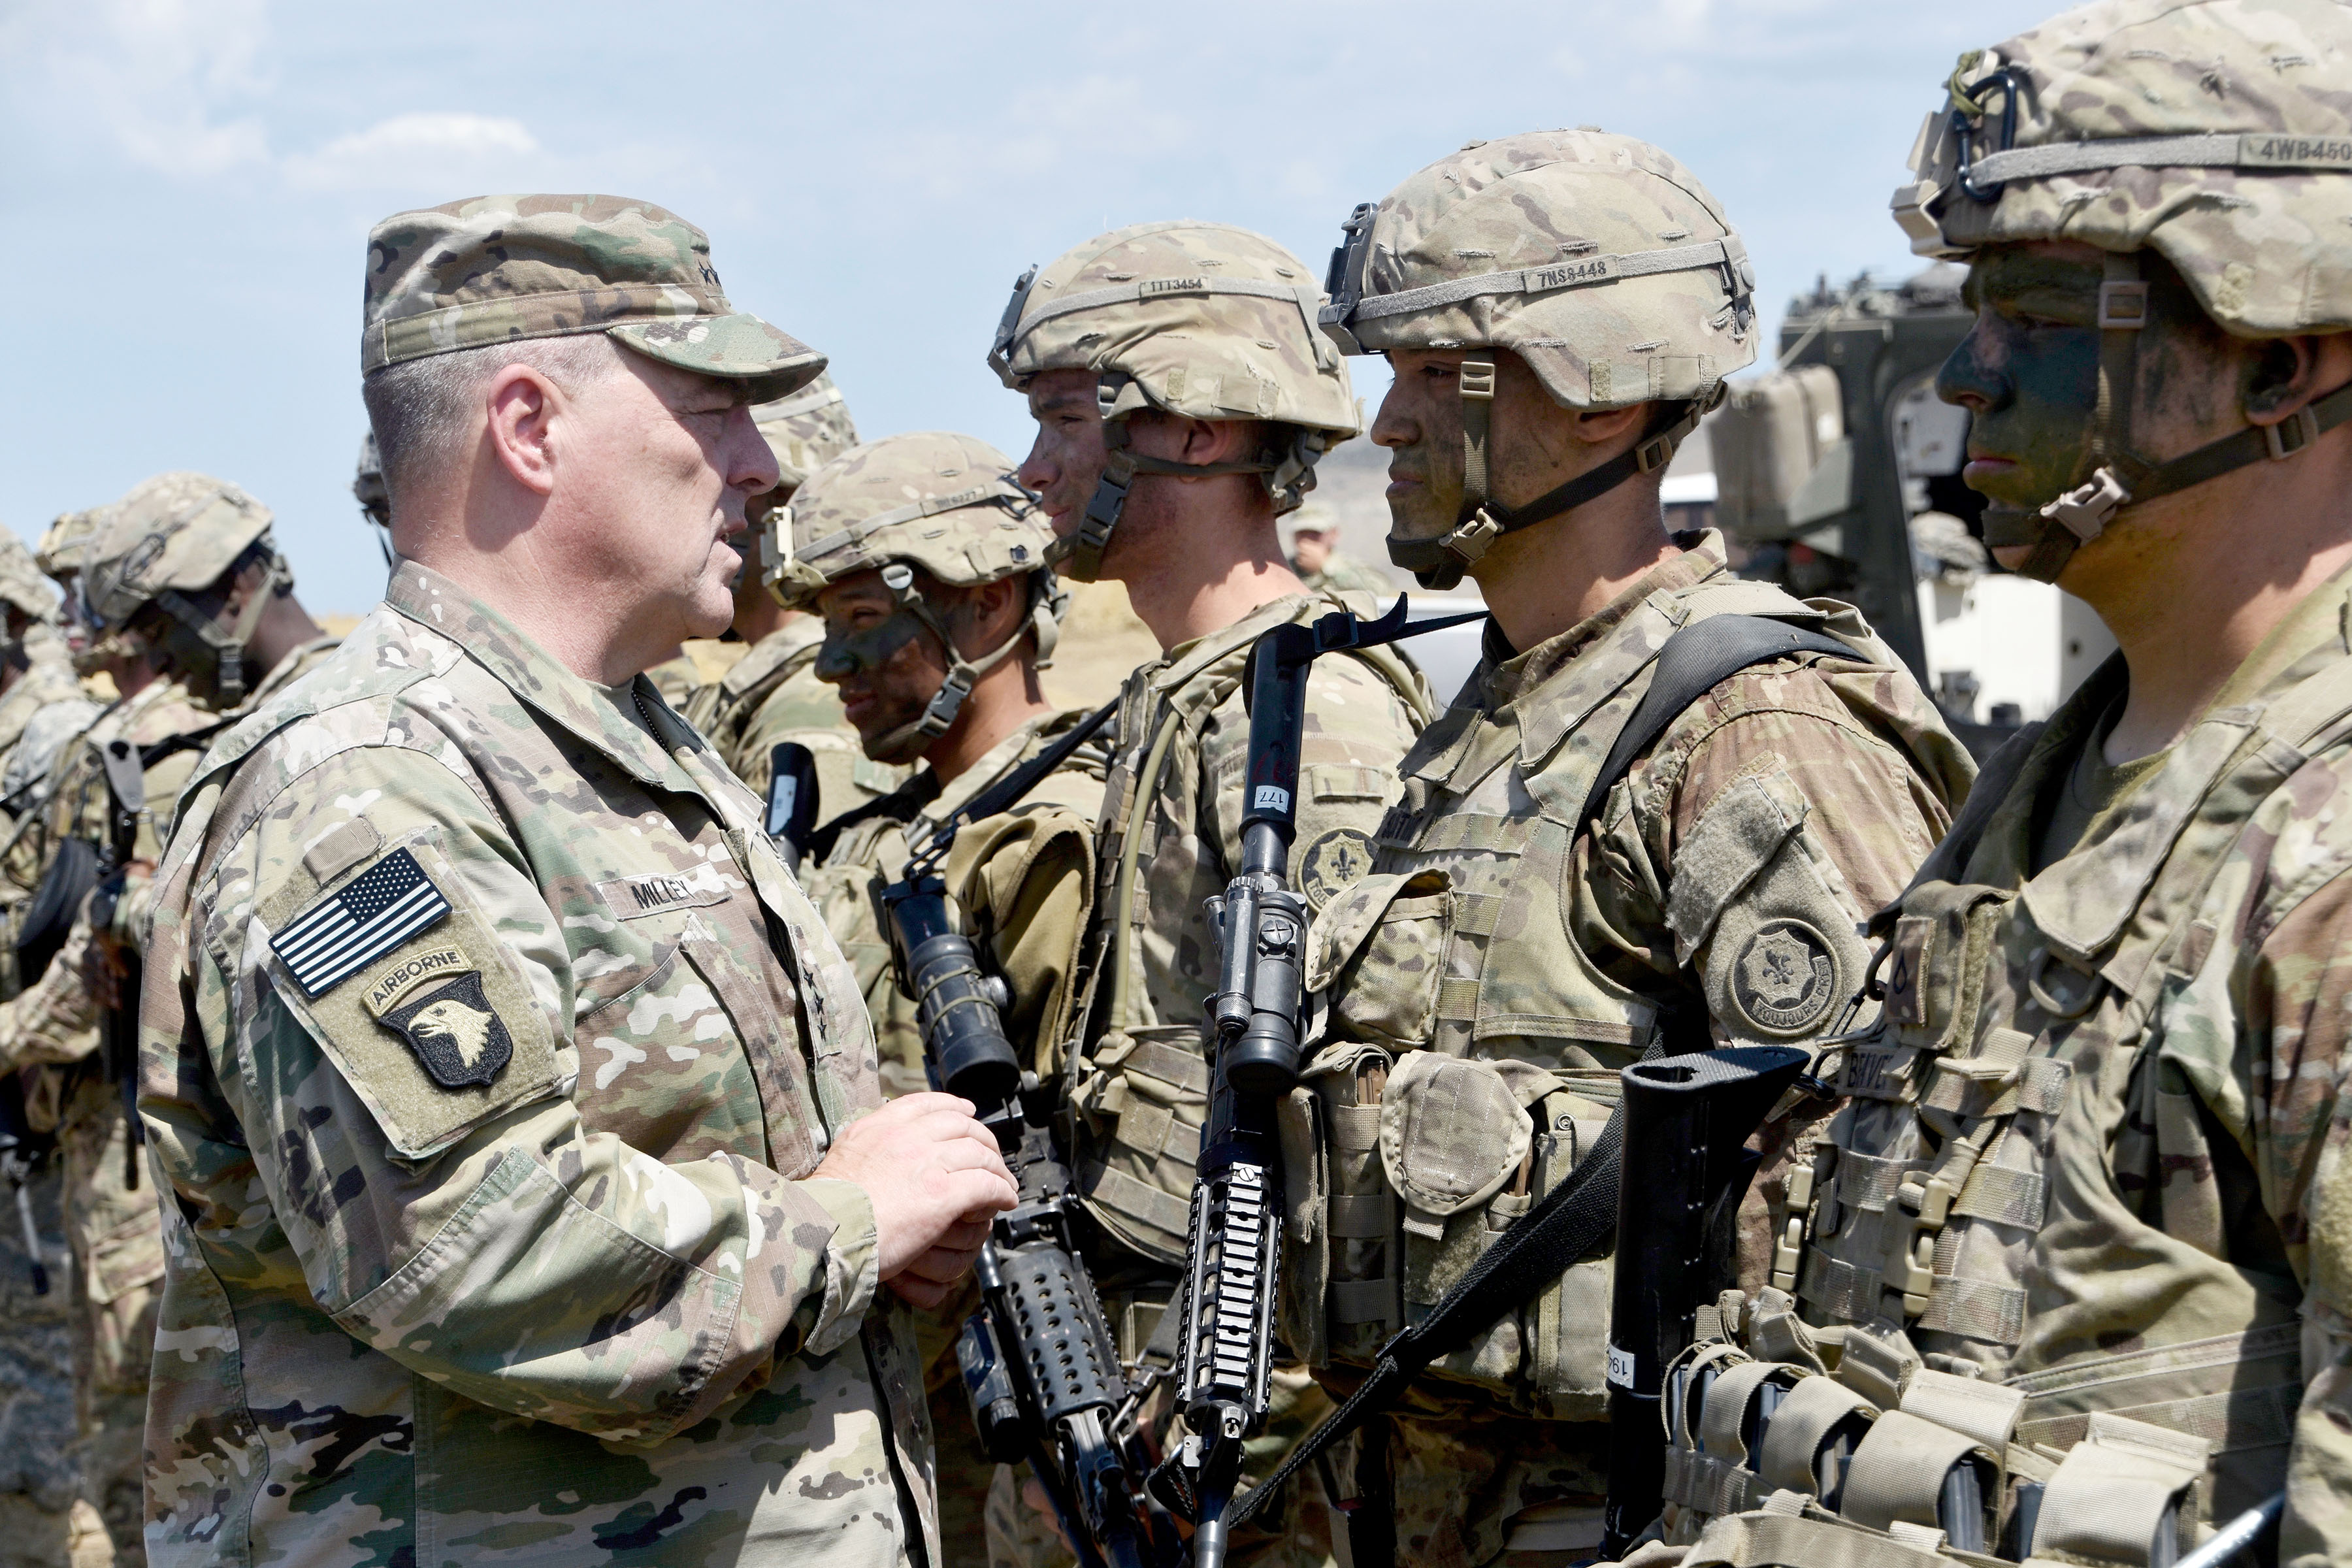 Gen. Mark A. Milley, U.S. Army chief of staff, hands out coins Aug. 10 to Soldiers assigned to 2nd Cavalry Regiment during Exercise Noble Partner 2017 in Vaziani, Georgia. Noble Partner is designed to prepare the Georgian military for its contribution to the NATO Response Force. Milley's emphasis on readiness as the Army's No. 1 priority has sparked far-reaching conversation on what readiness is and how it can be achieved. (Photo by Capt. Judith Marlowe, 2nd Cavalry Regiment)